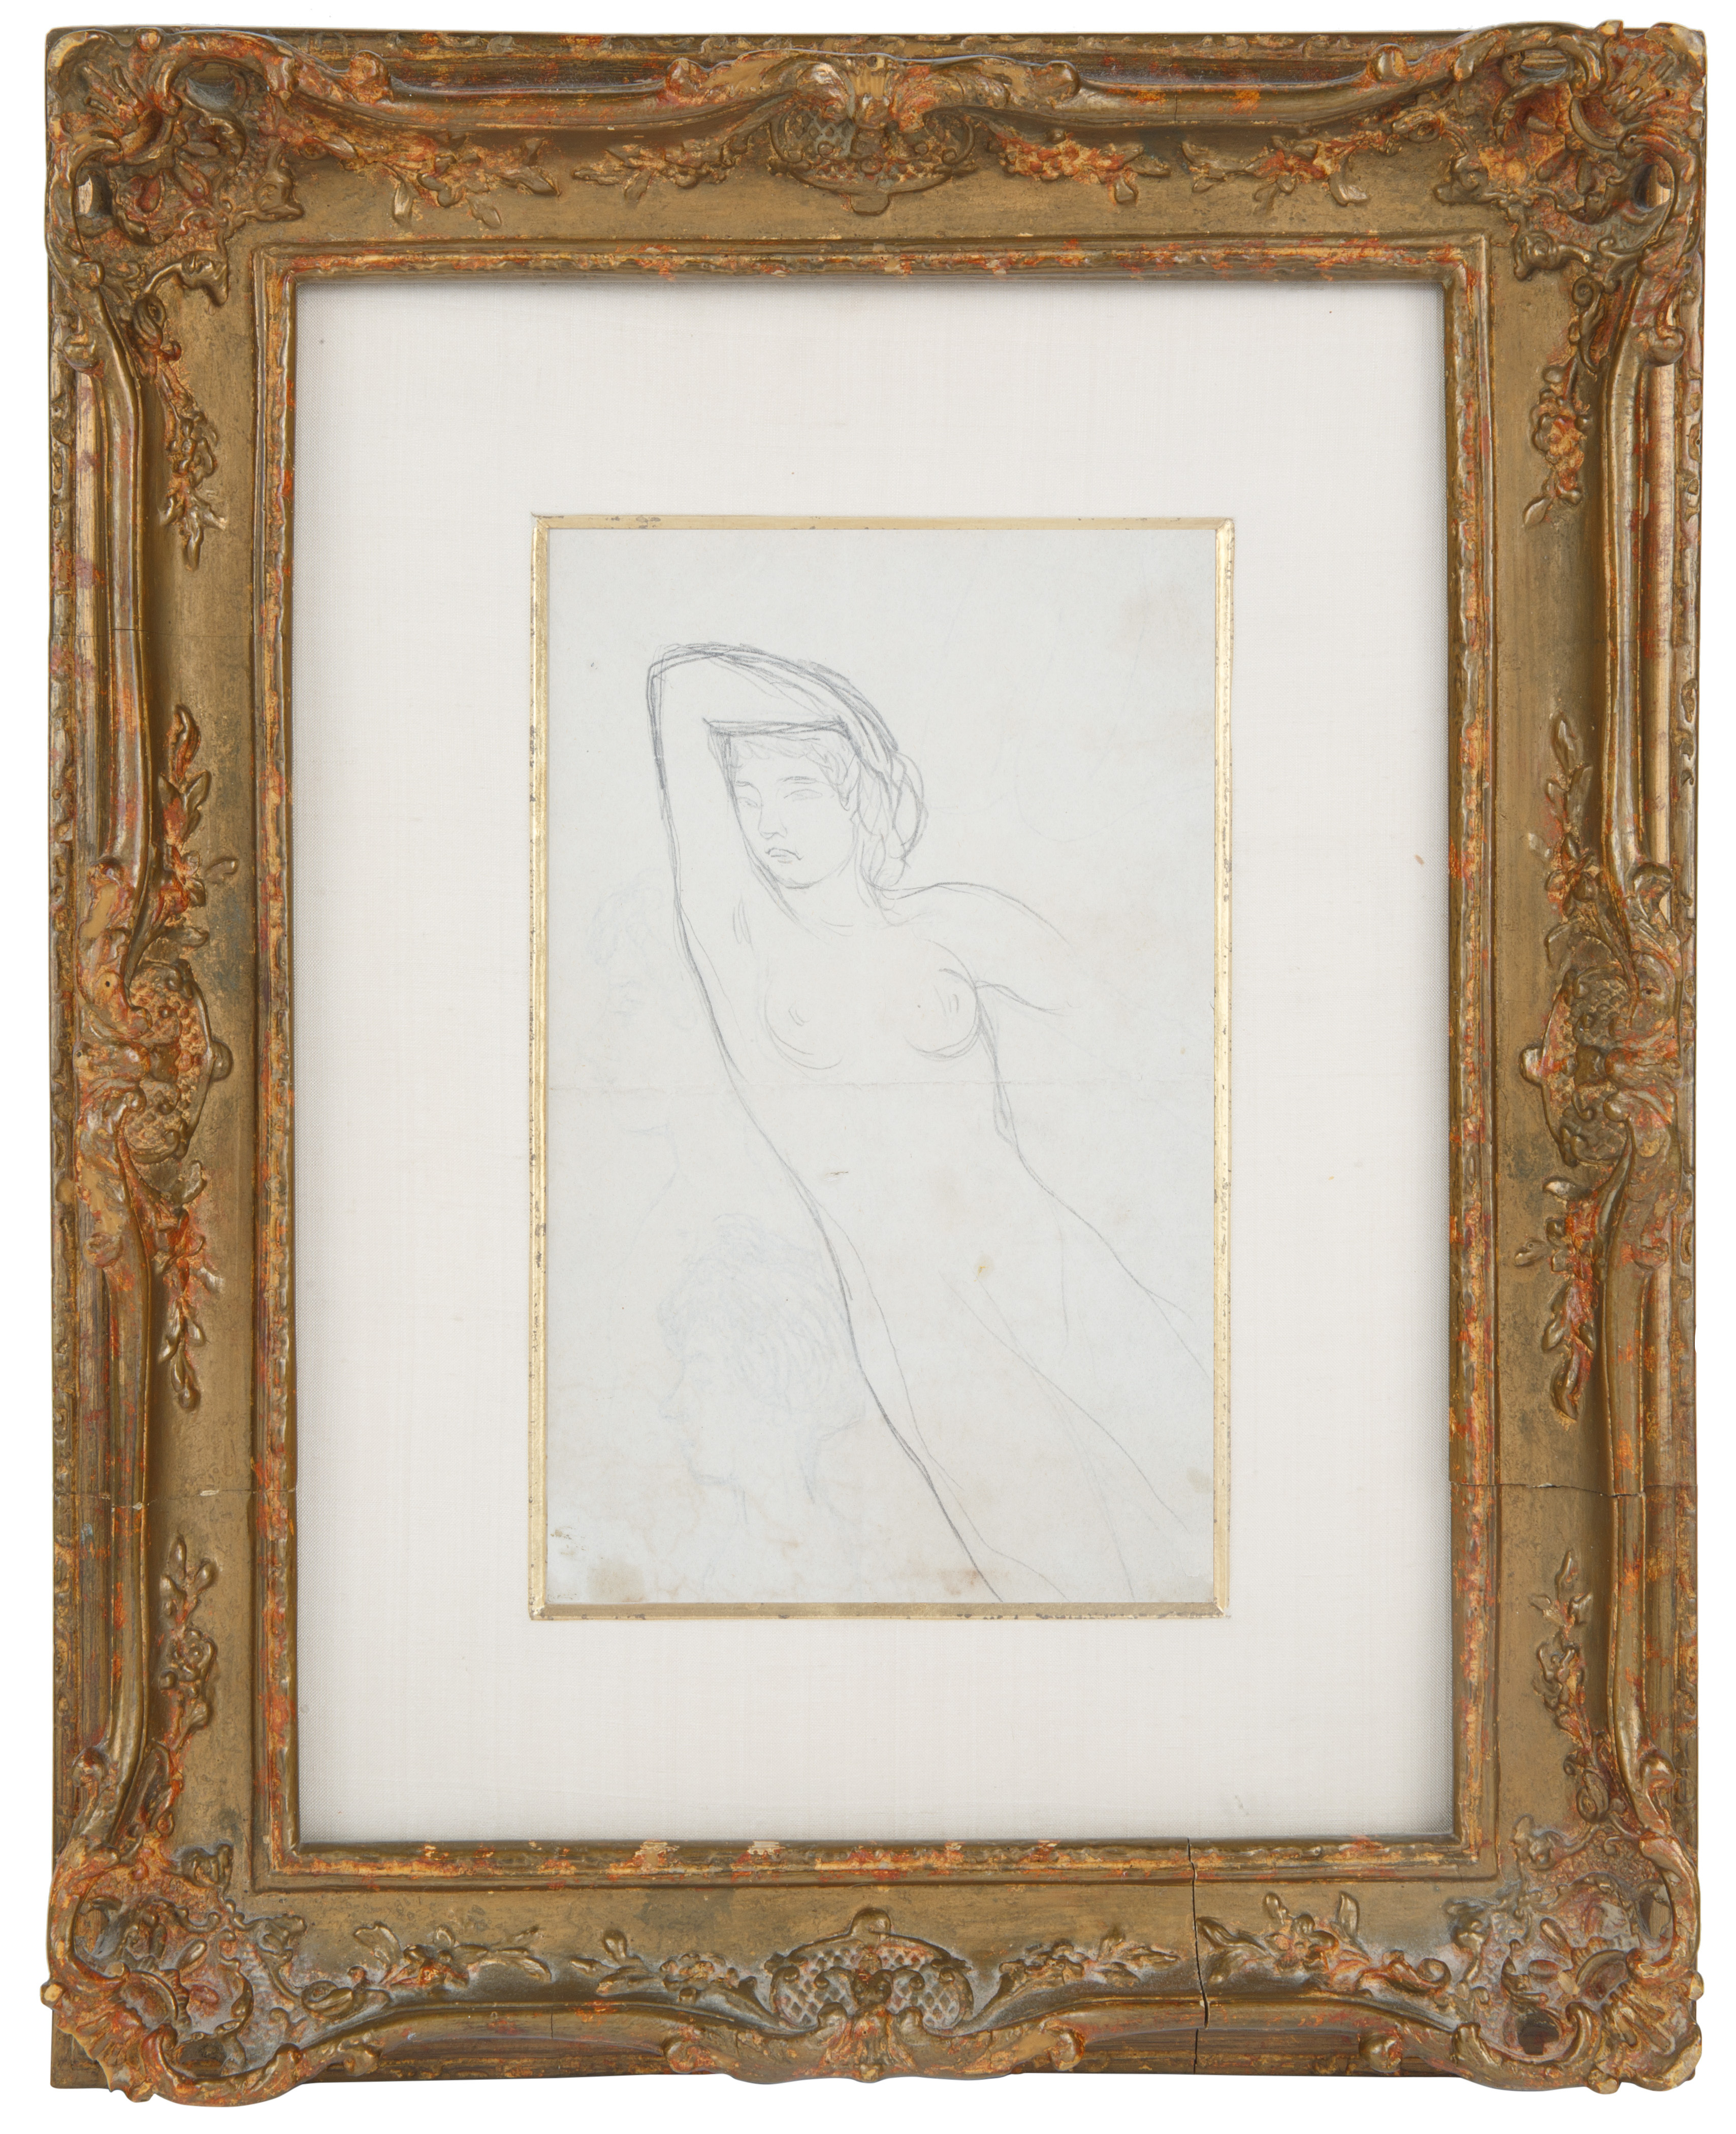 A DOUBLE-SIDED NUDE BY PIERRE BONNARD (FRENCH 1867-1947) - Image 3 of 6